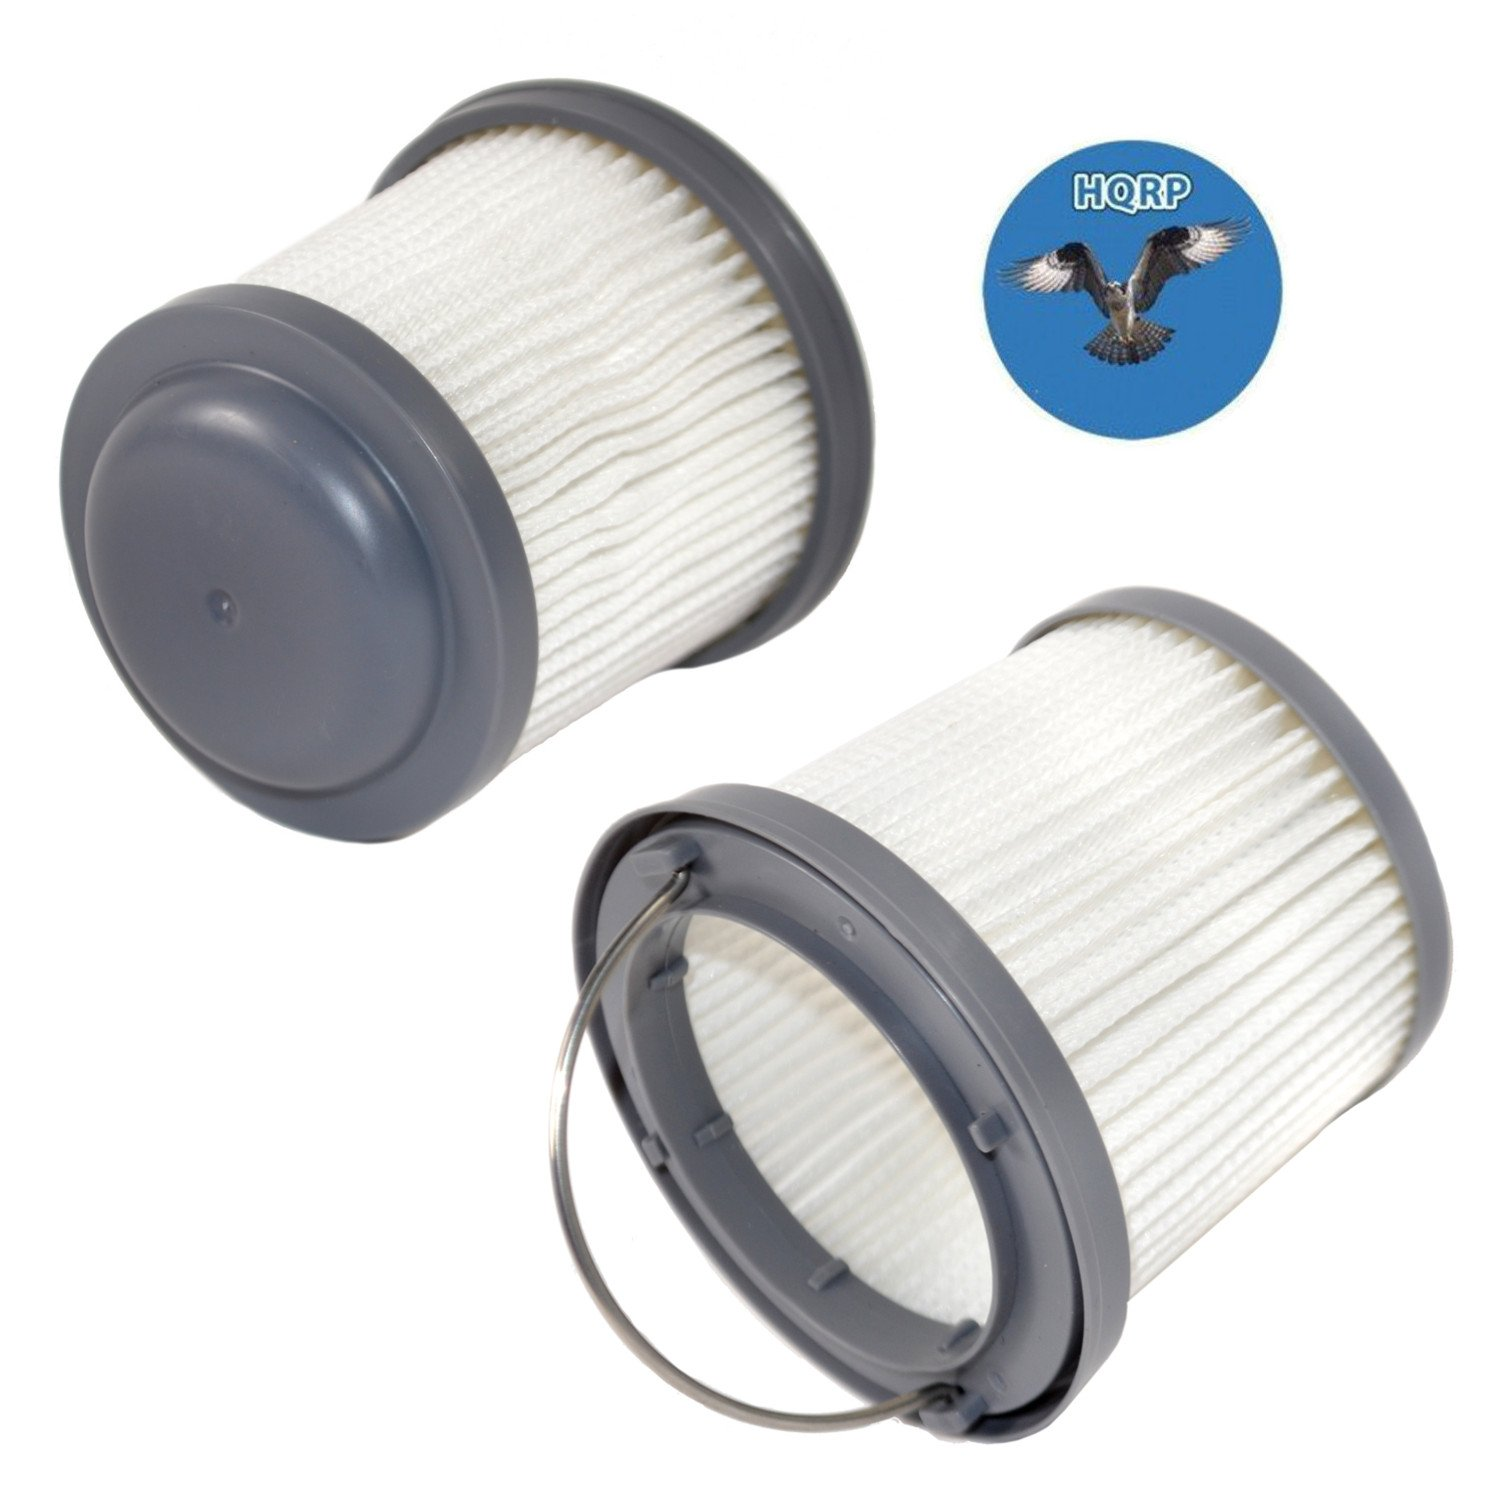 HQRP 2-Pack Washable Filter for Black & Decker BDH2000PL, BDH1600PL, BDH2020FLFH, BDH1620FLFH, BDH2020FLFH Flex Lithium Pivot Vac Vacuums Coaster 884667810111708